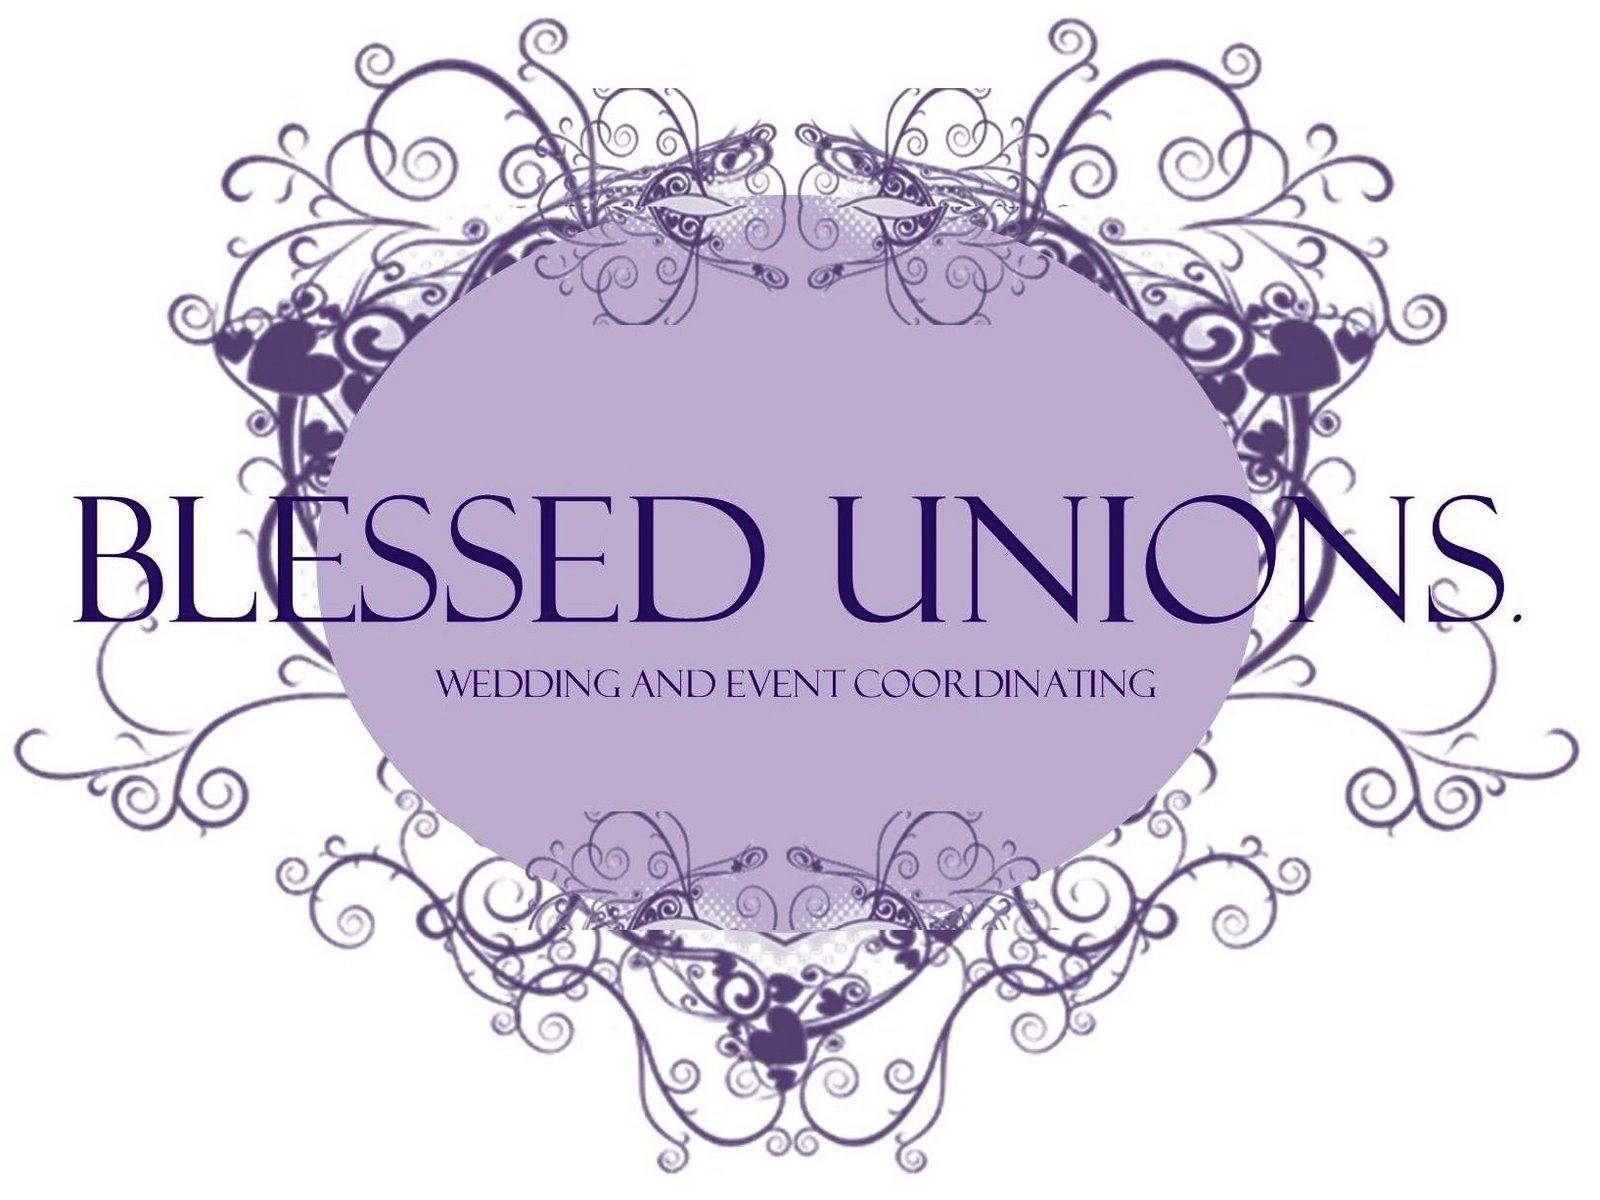 Beautiful Blessed Unions' Brides Blog!